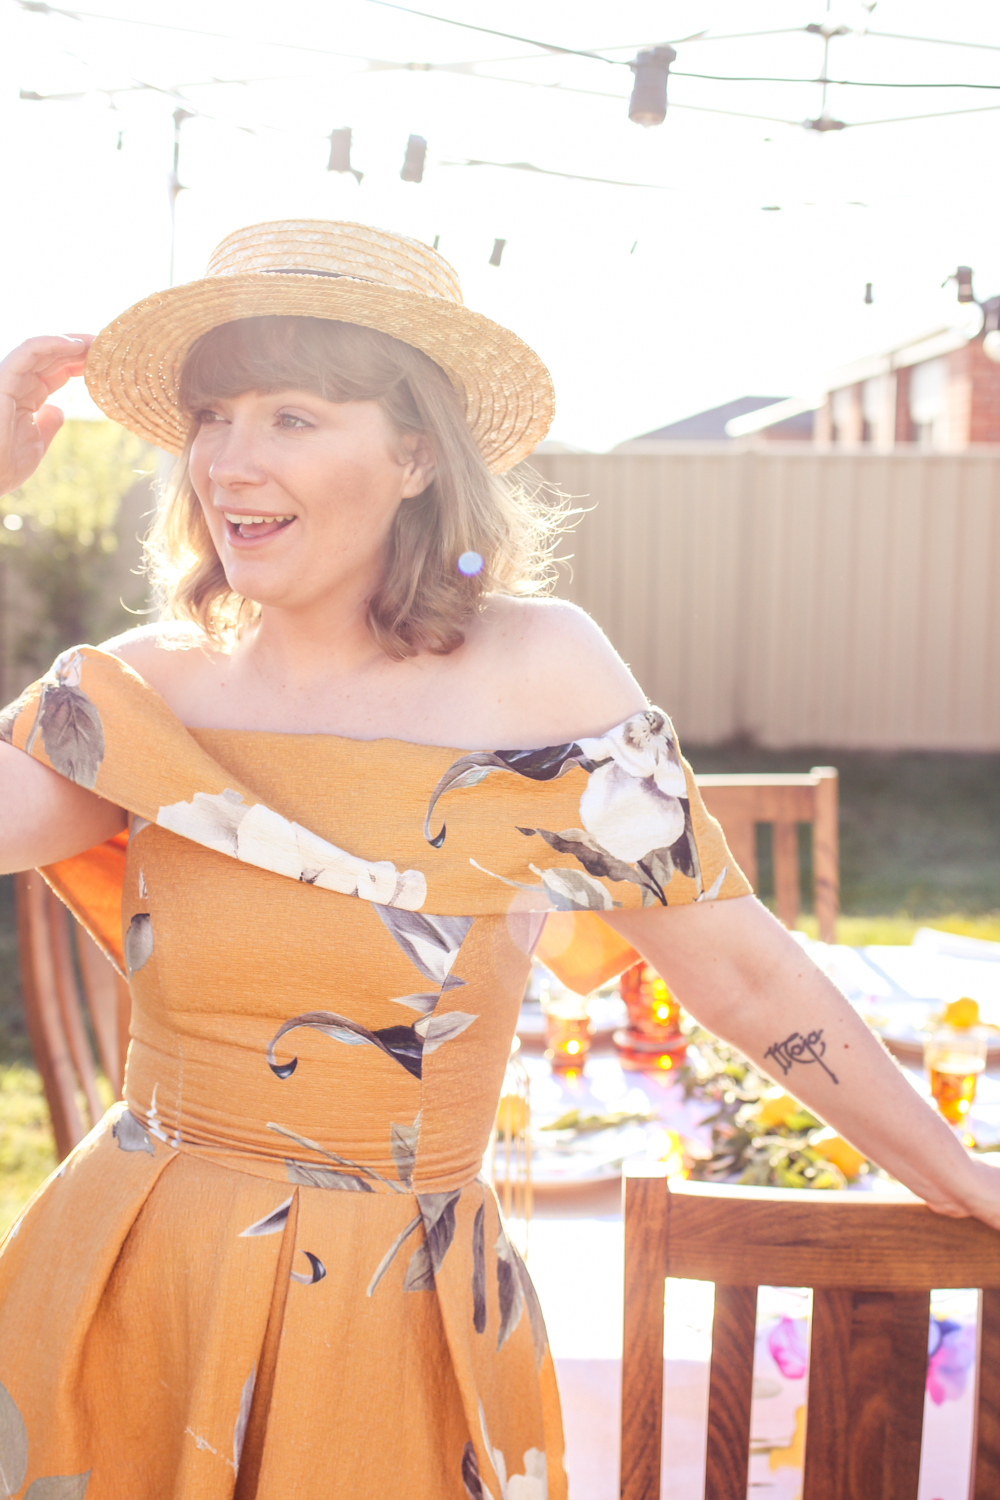 Liana of @findingfemme wears yellow floral asos dress at backyard dinner party.